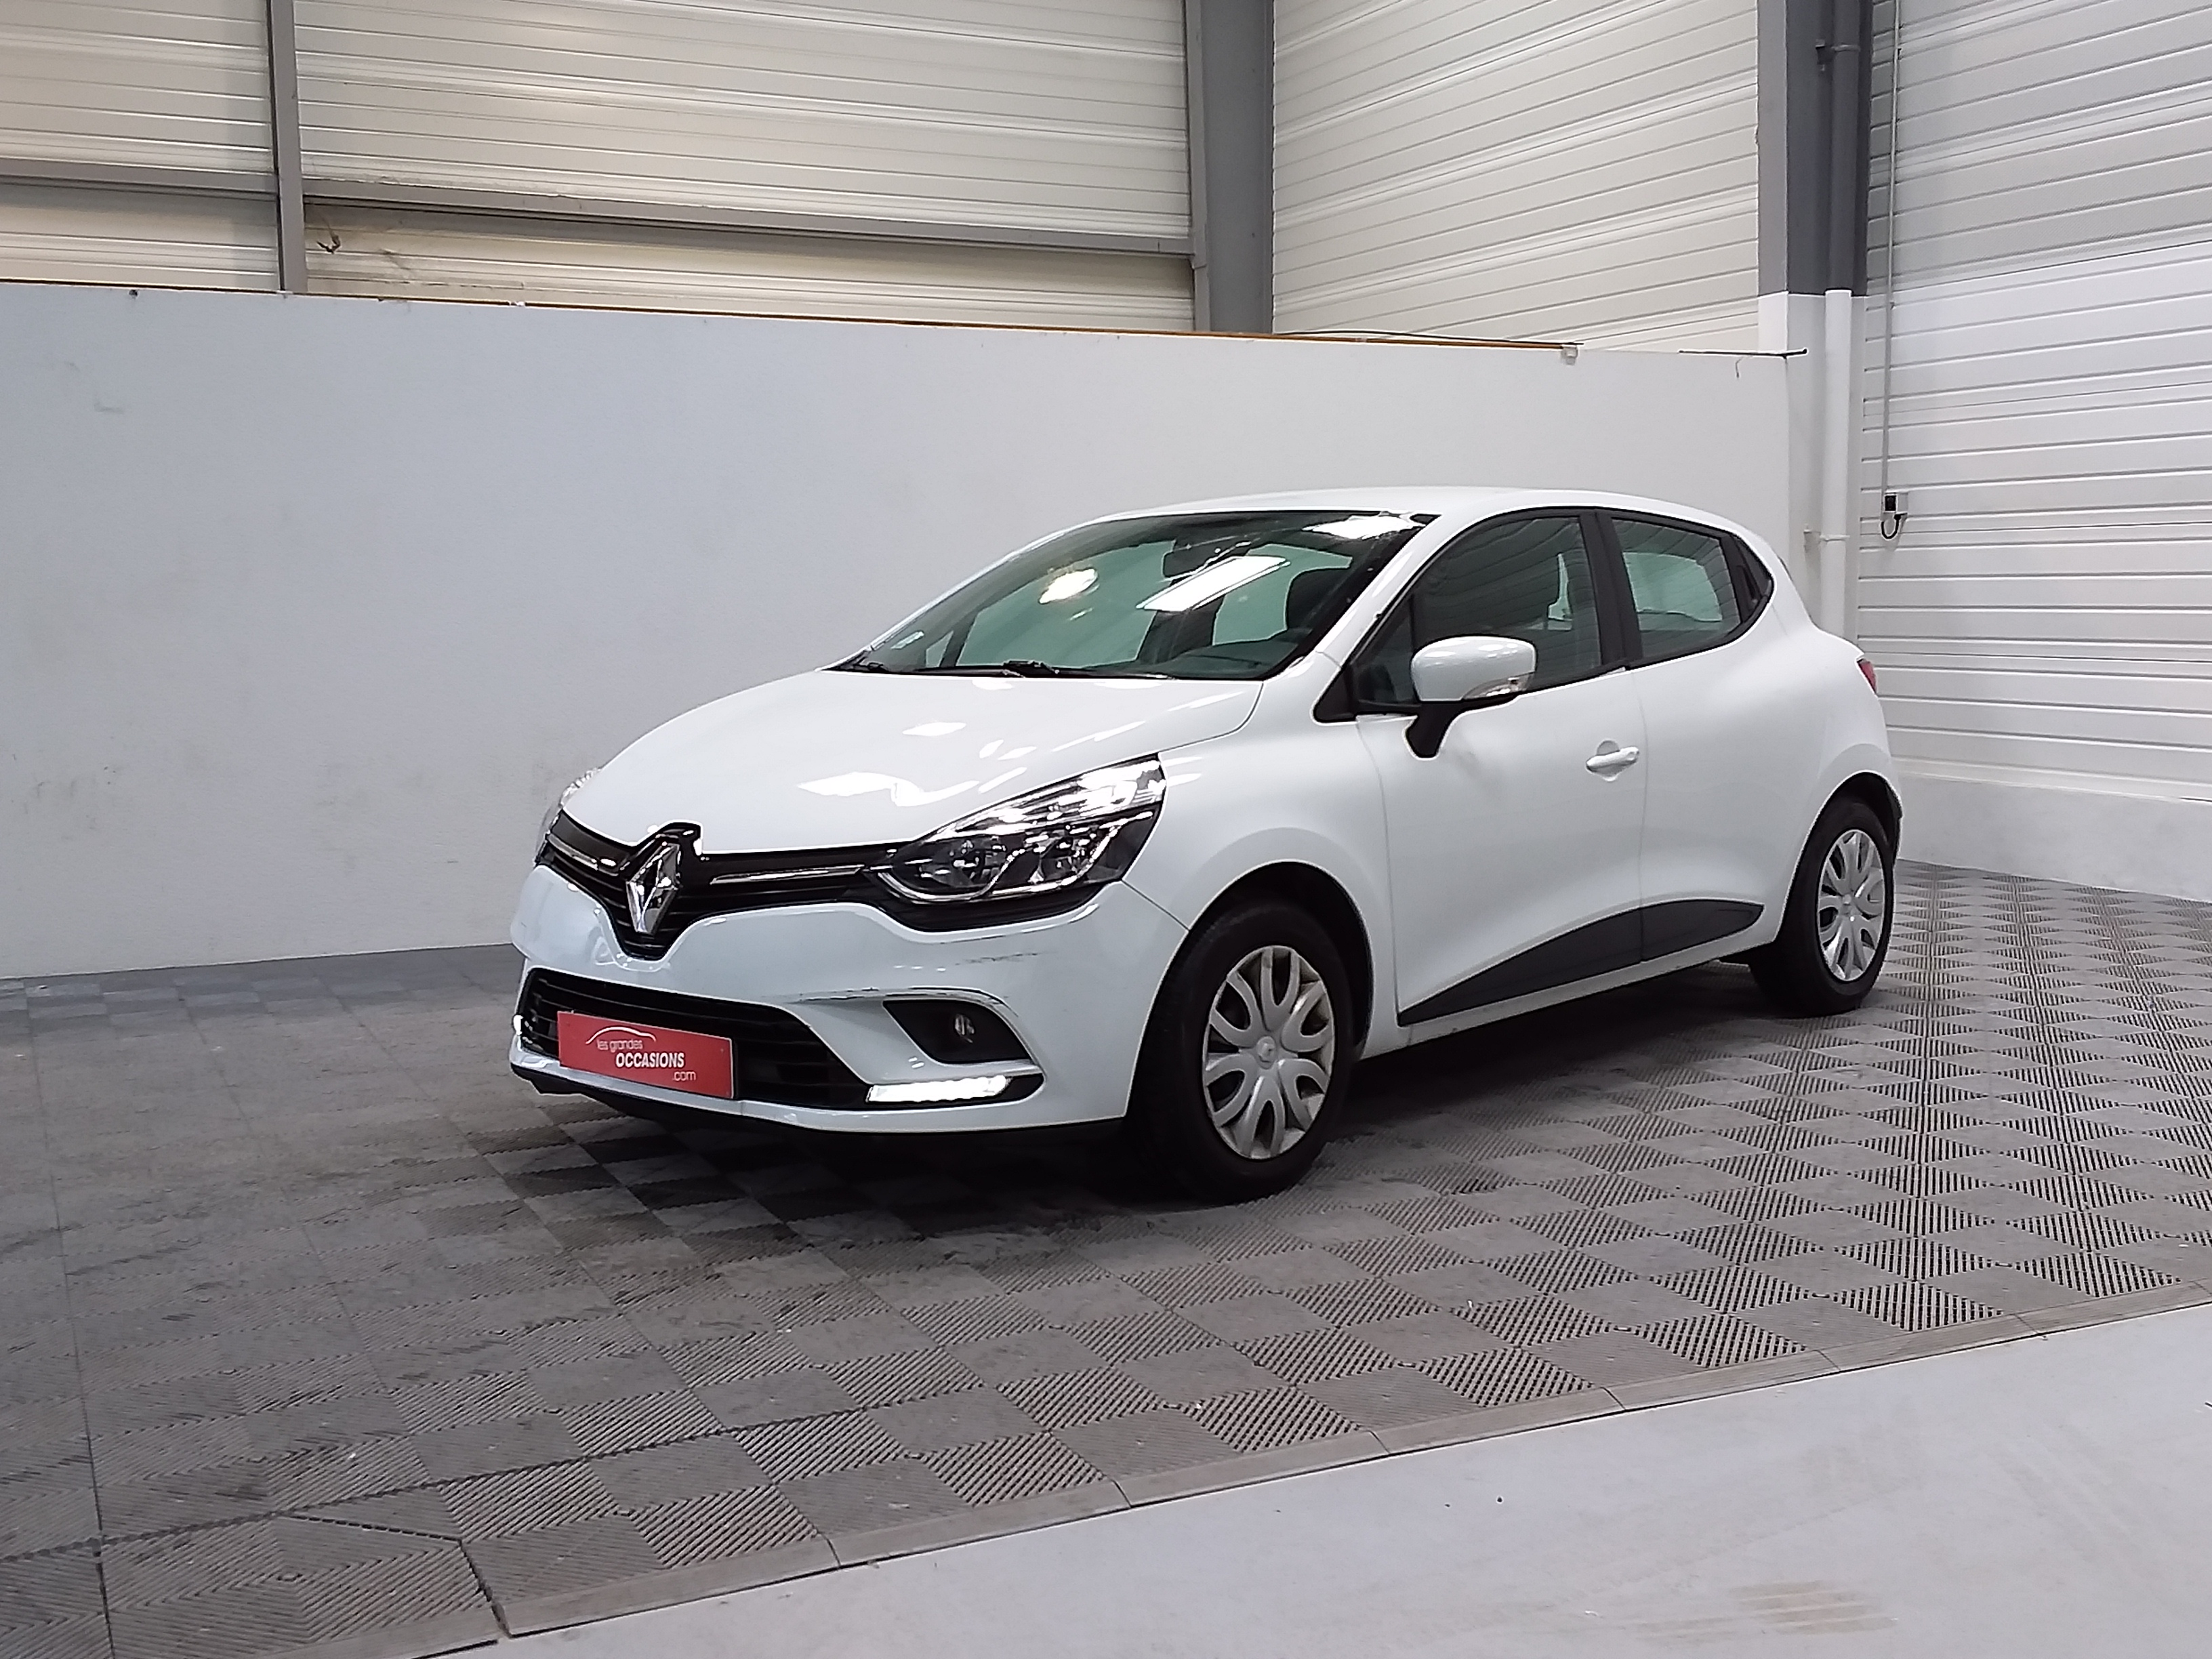 RENAULT CLIO IV SOCIETE 2017 à 5900 € - Photo n°1